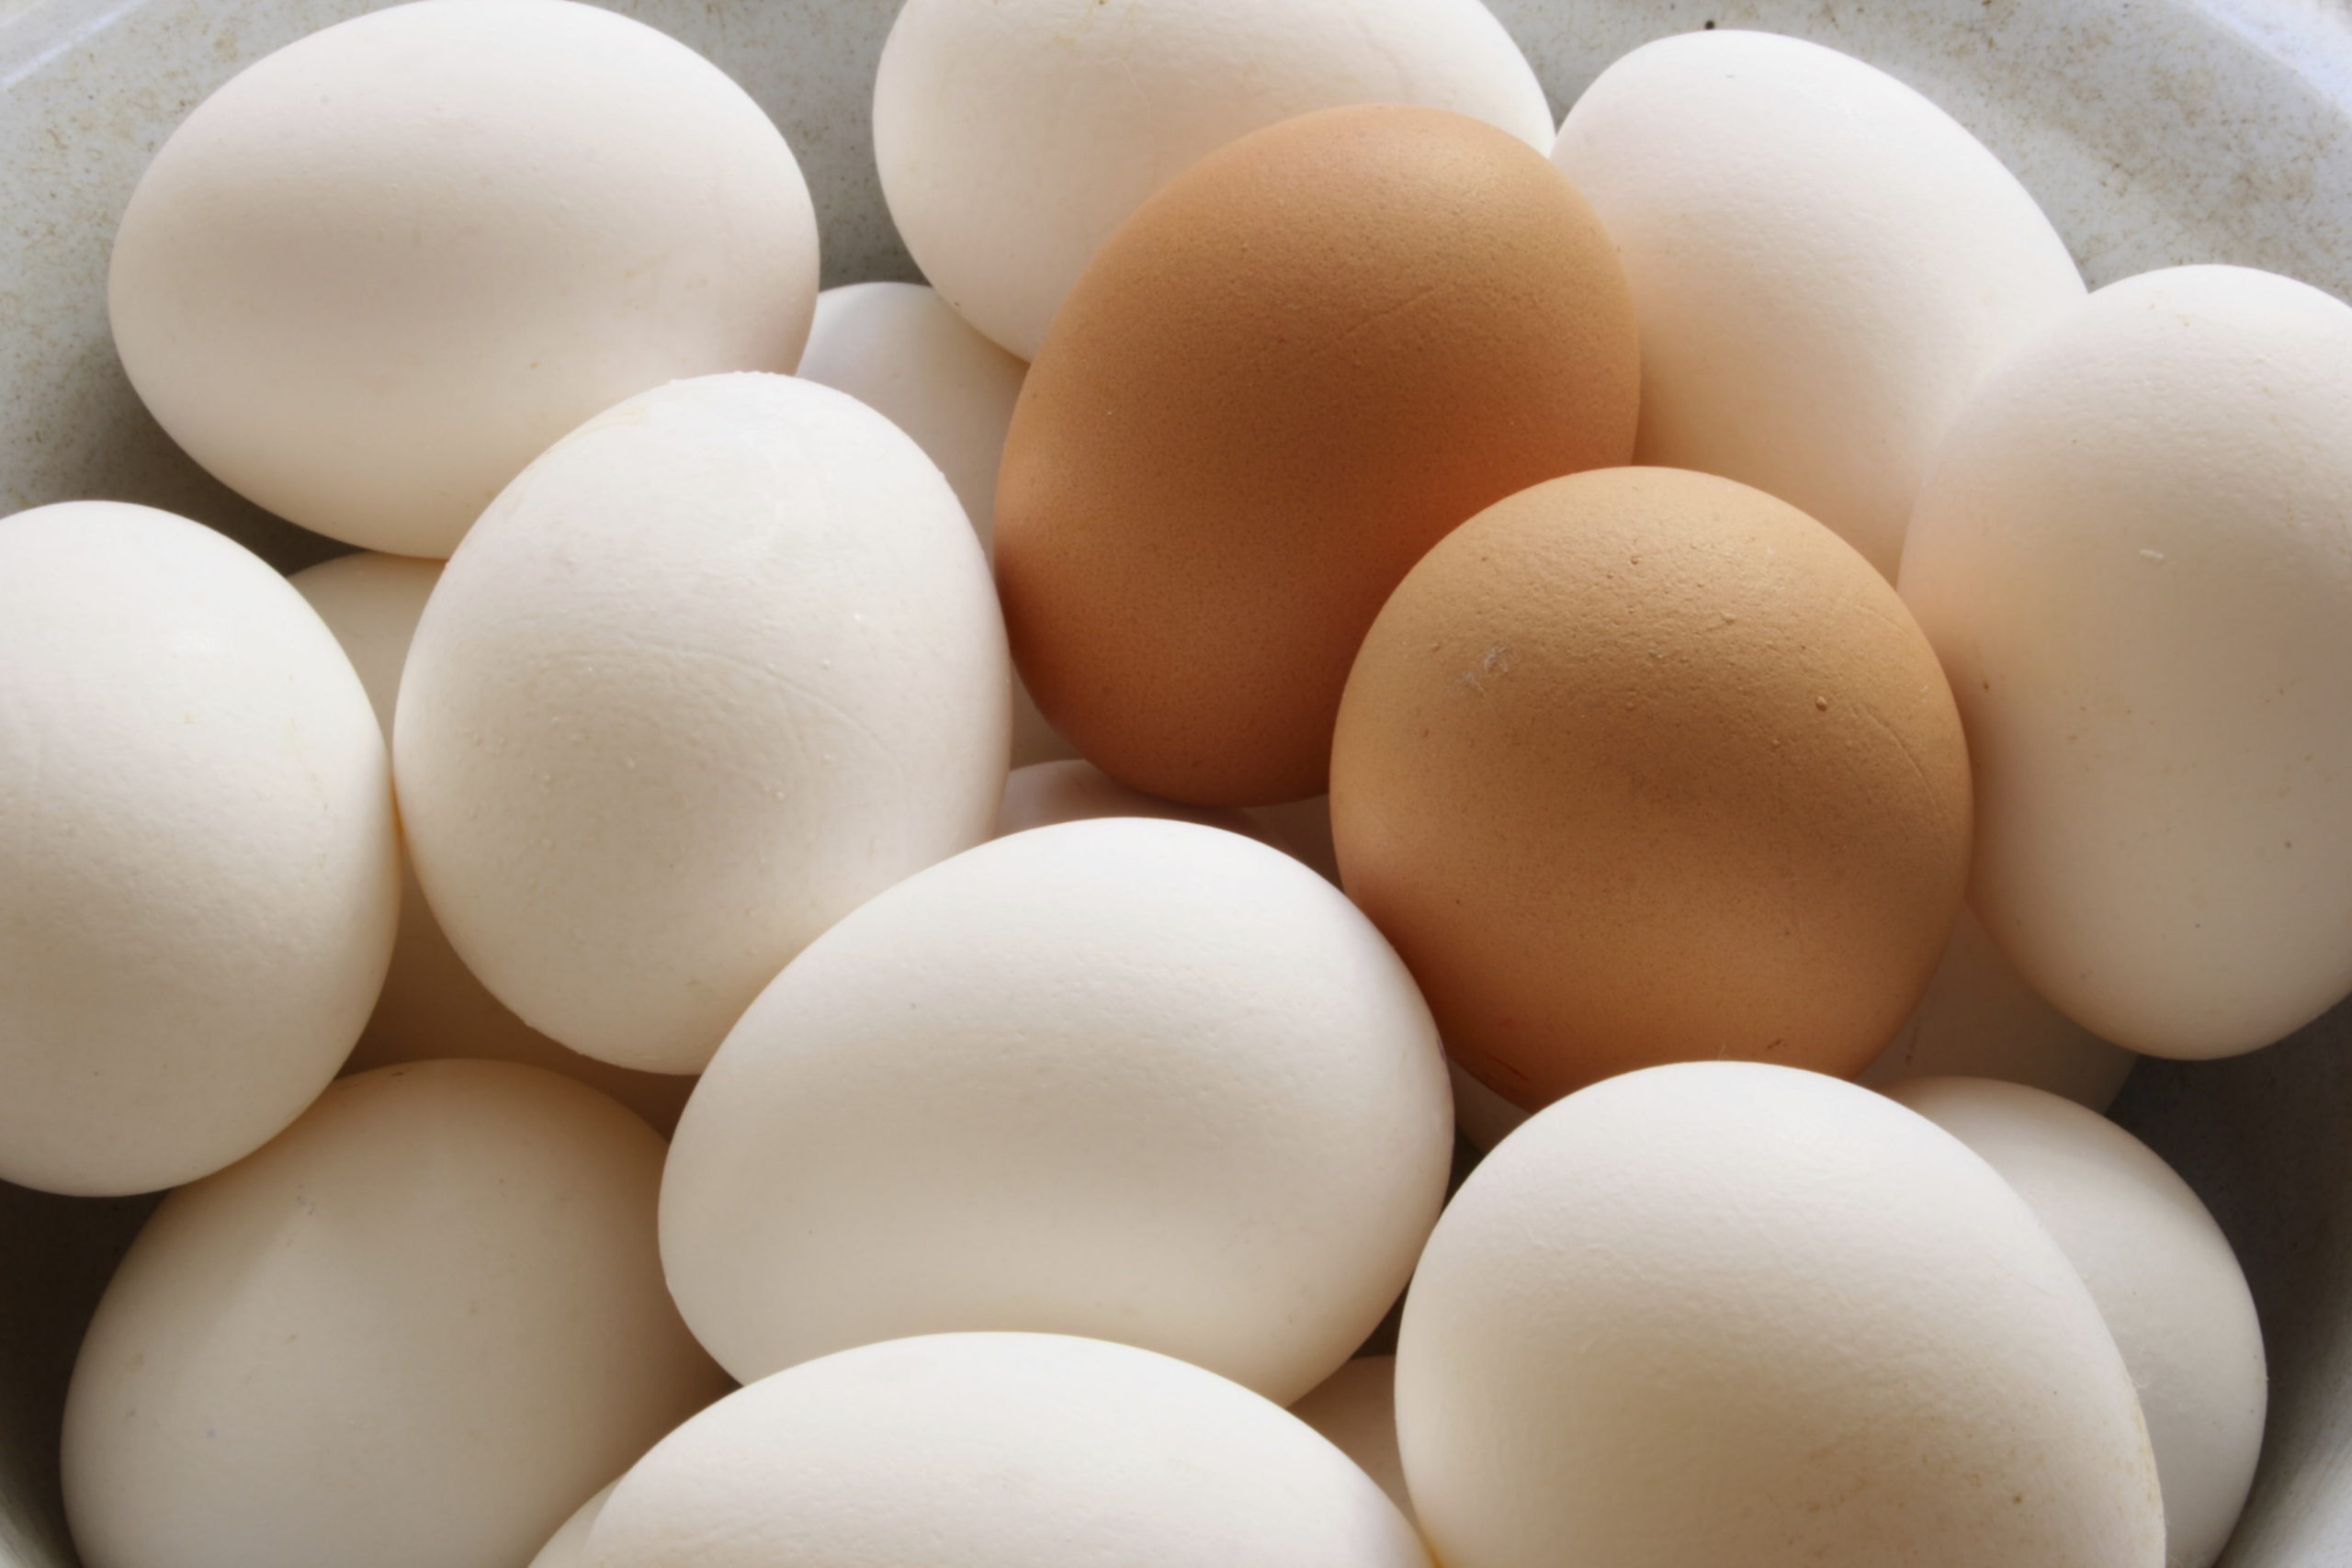 Pile of Eggs Background Image